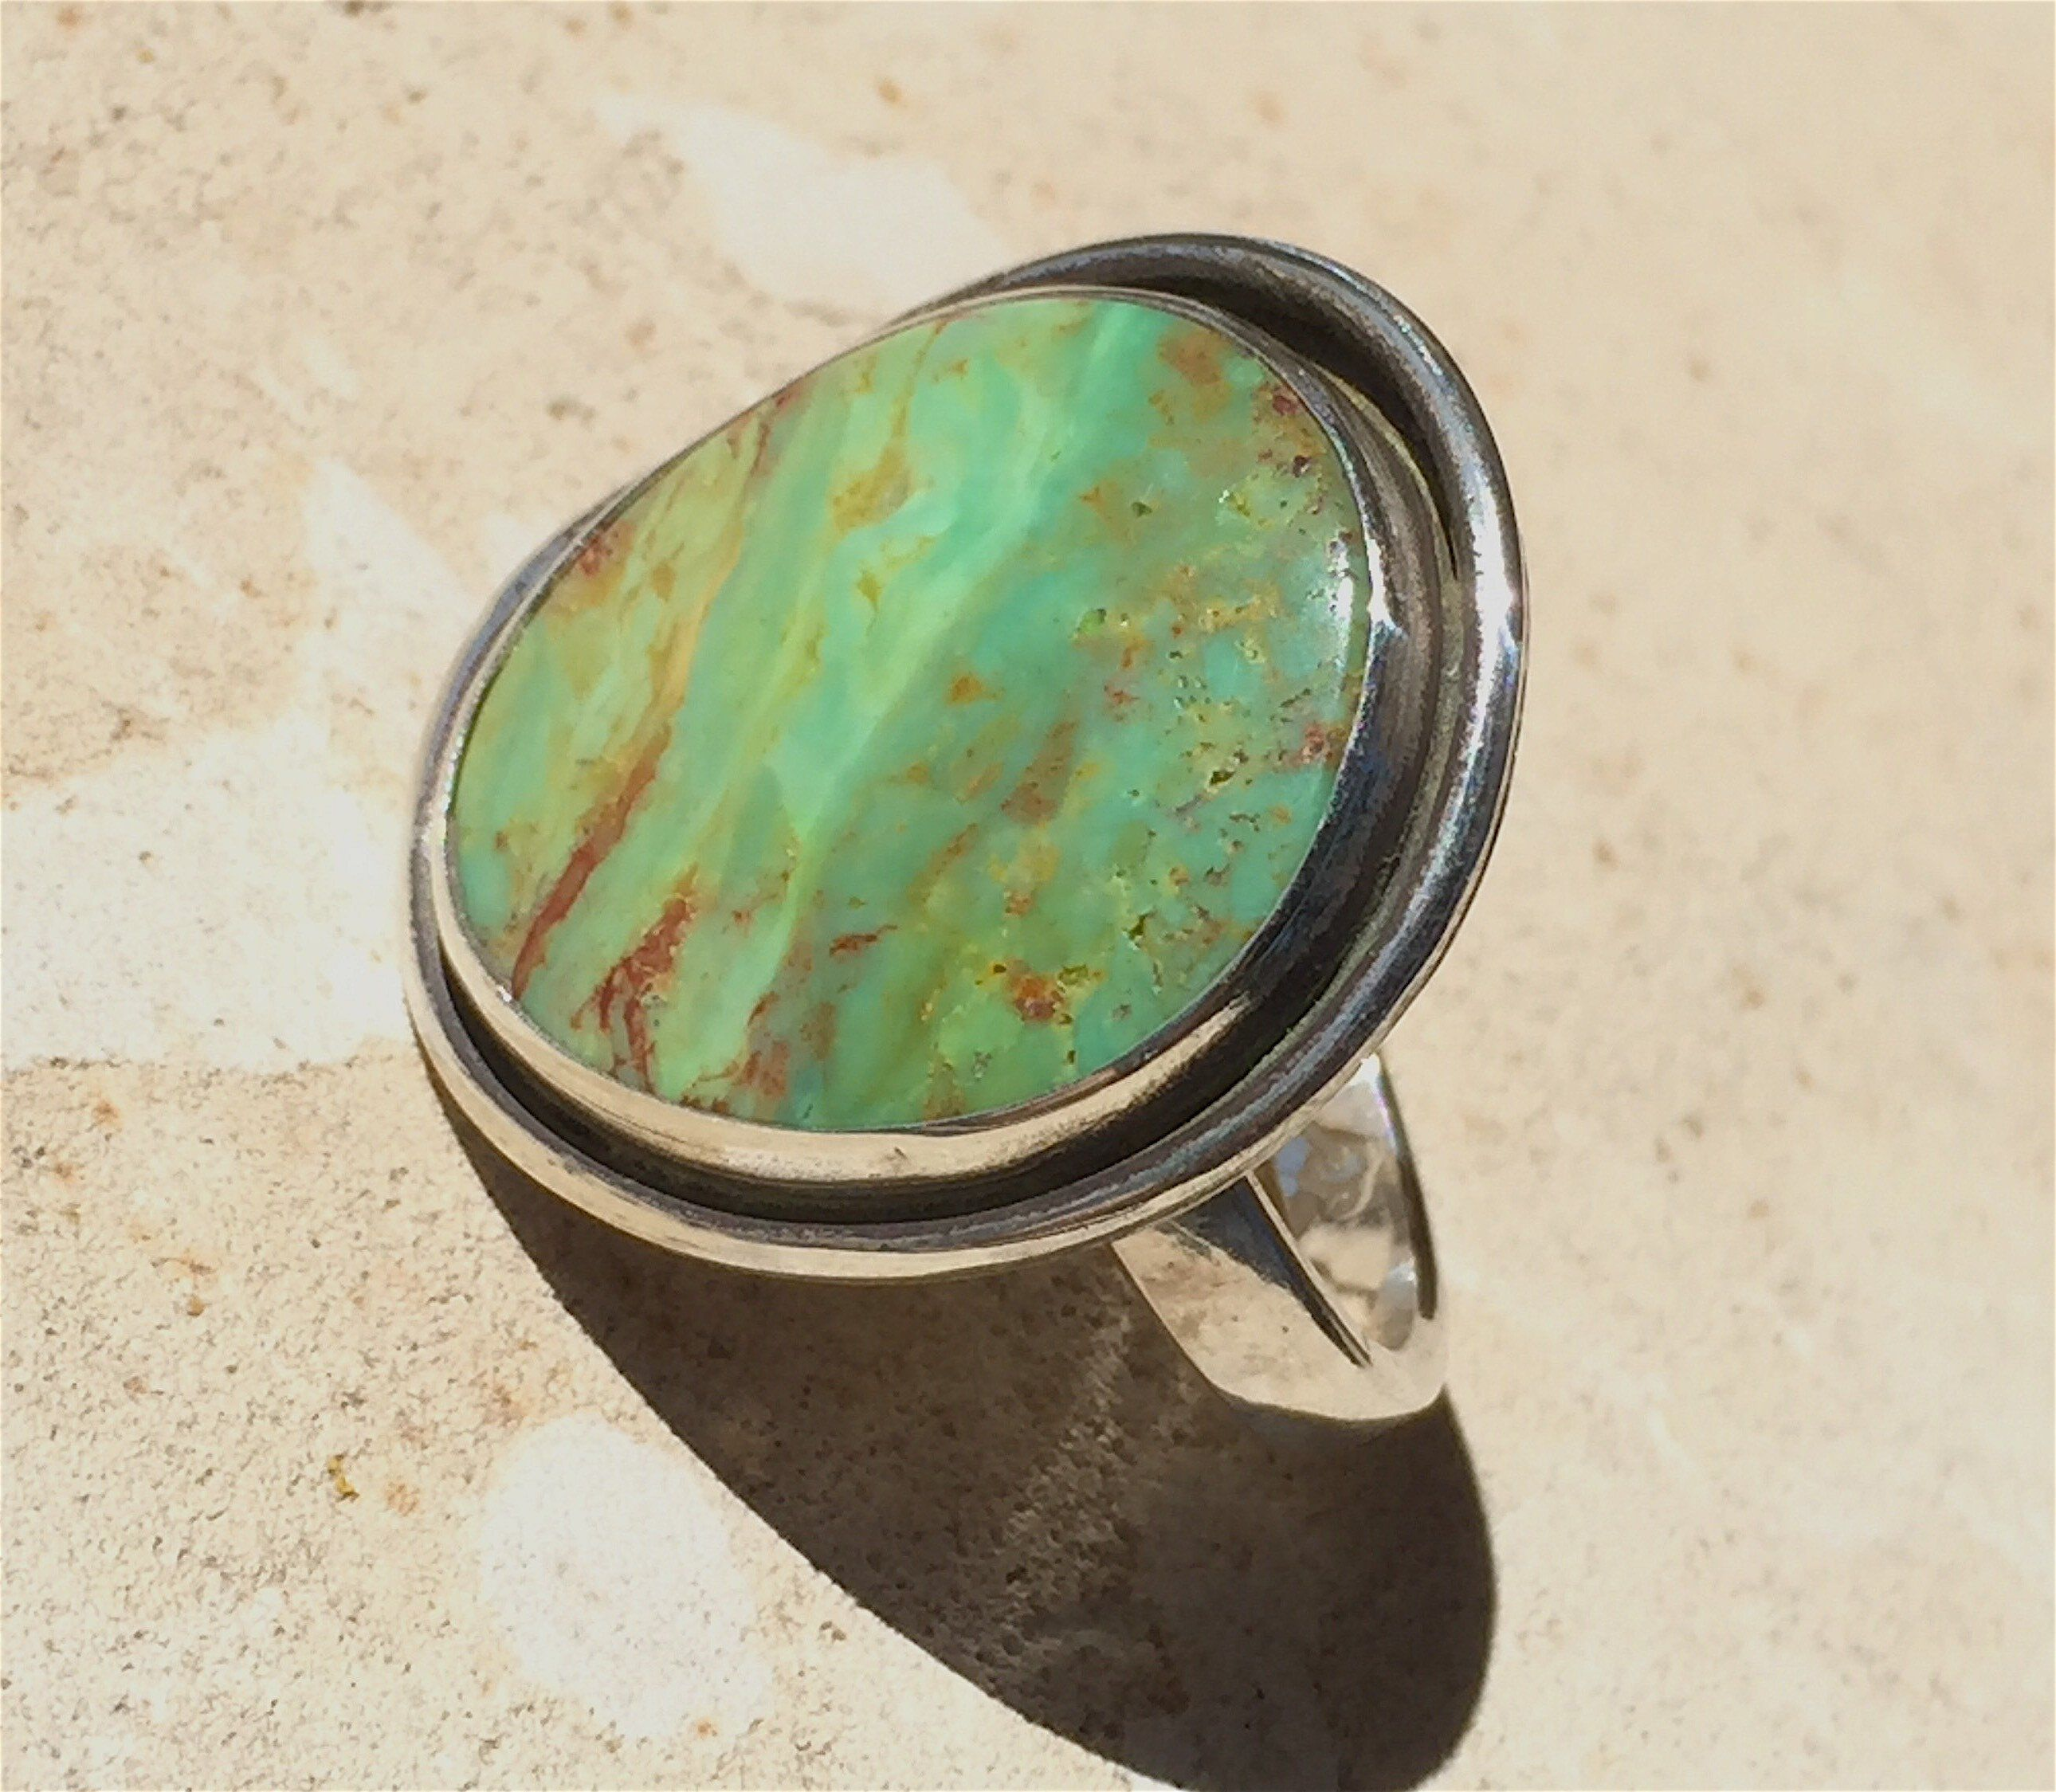 blog ring teal education making wire cleaning stone mystery jewelry rings videos information